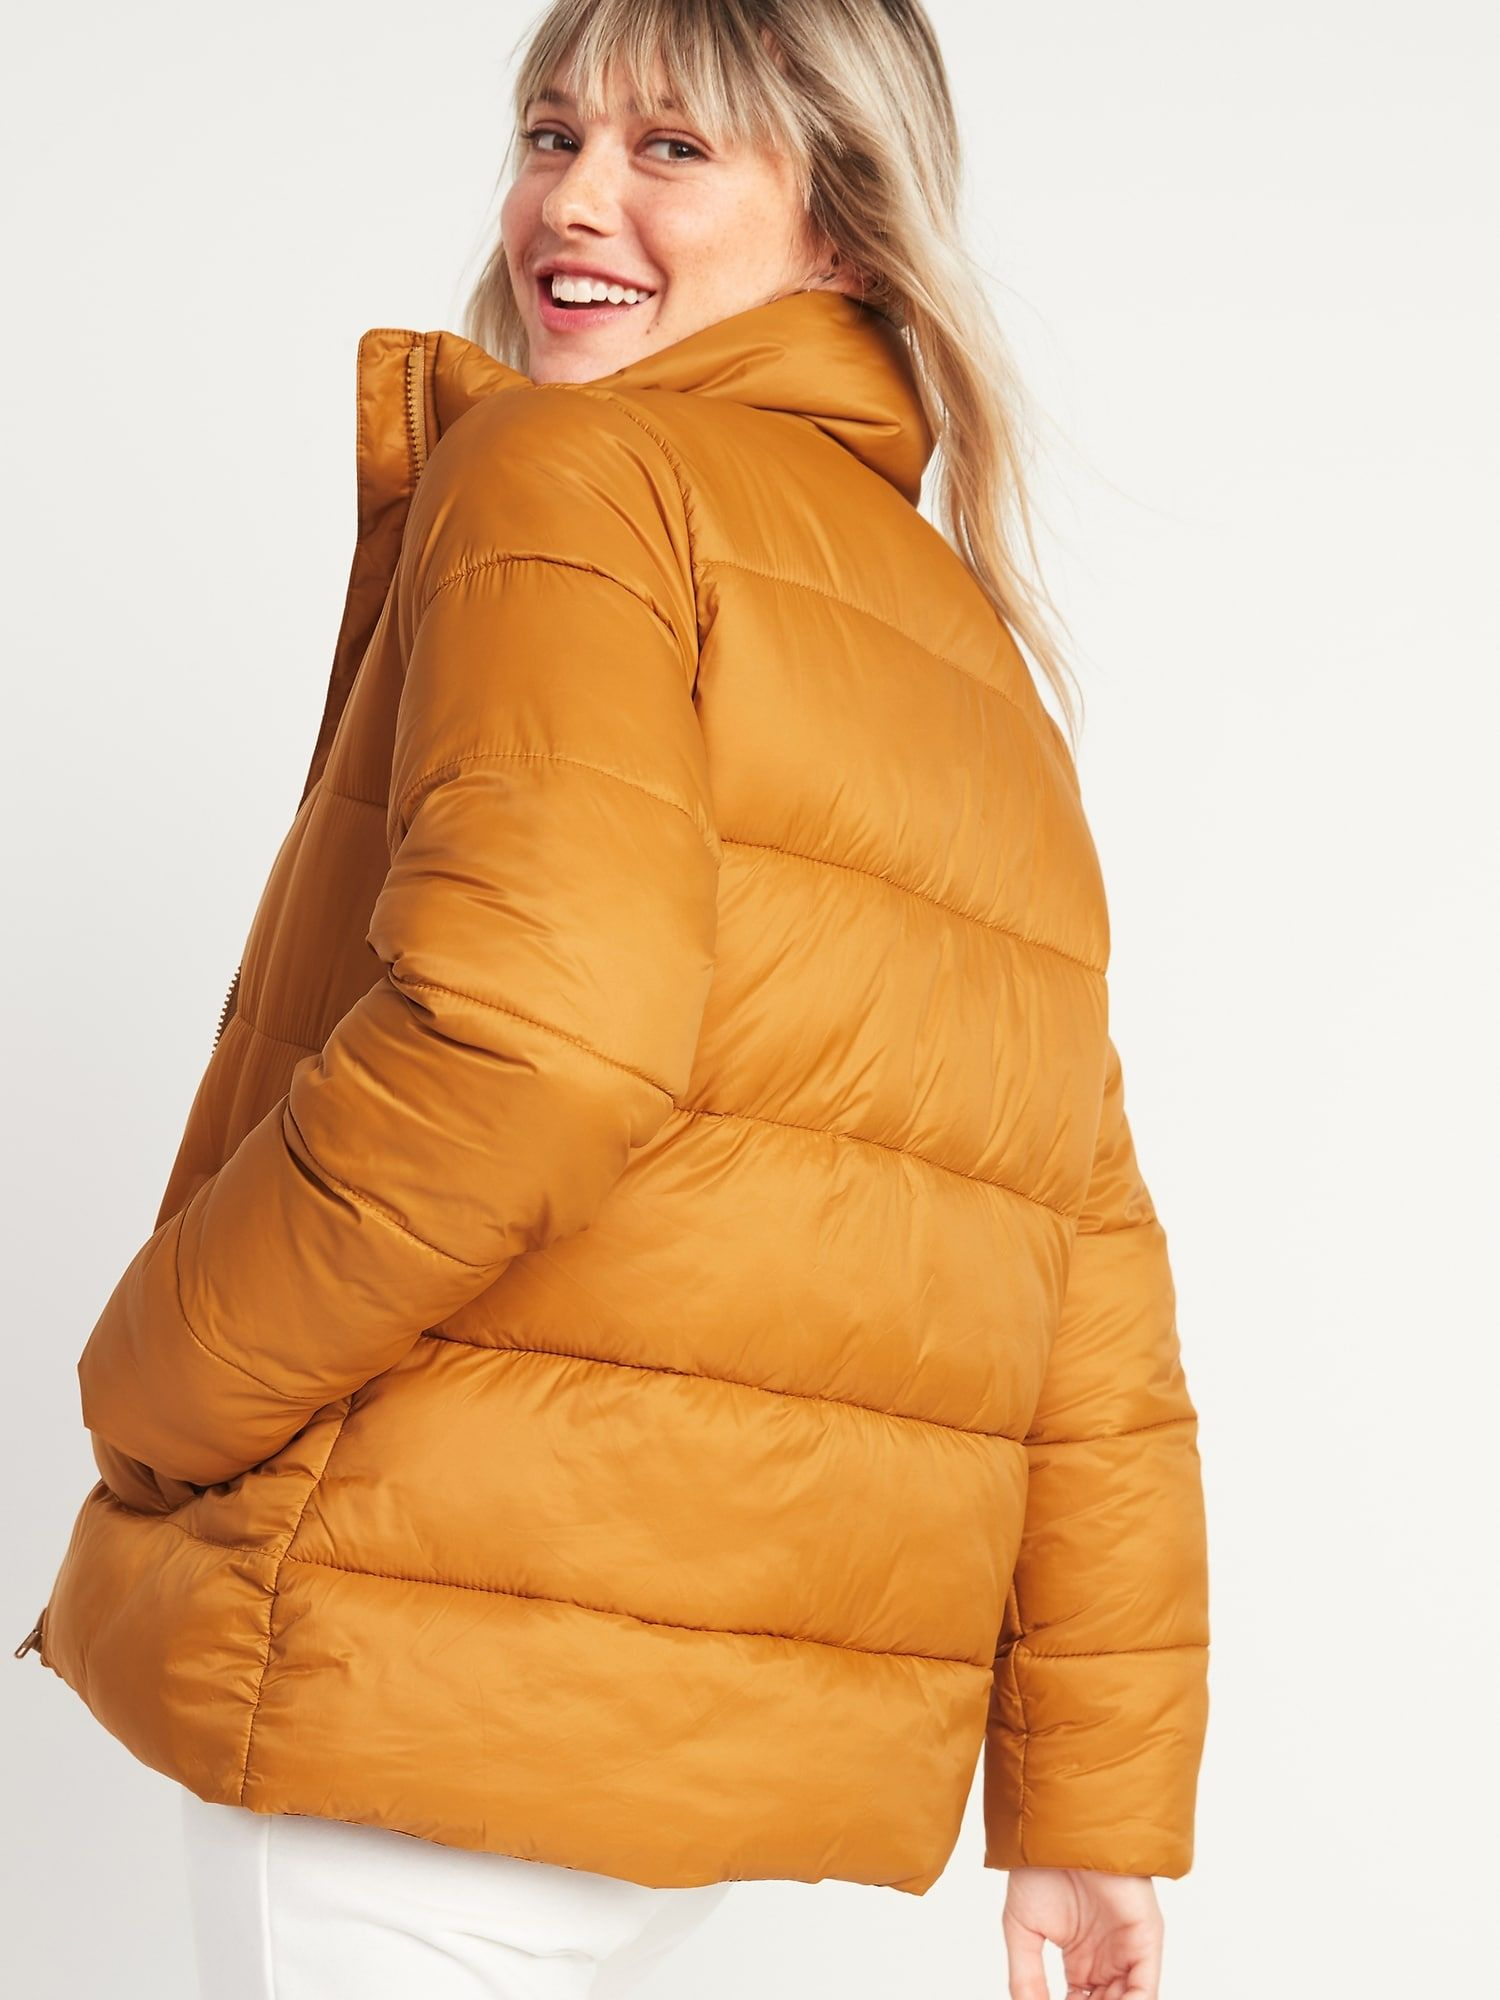 Old Navy Women S Frost Free Zip Front Puffer Jacket Miner S Gold Petite Size Xl In 2021 Puffer Jacket Women Old Navy Old Navy Women [ 2000 x 1500 Pixel ]